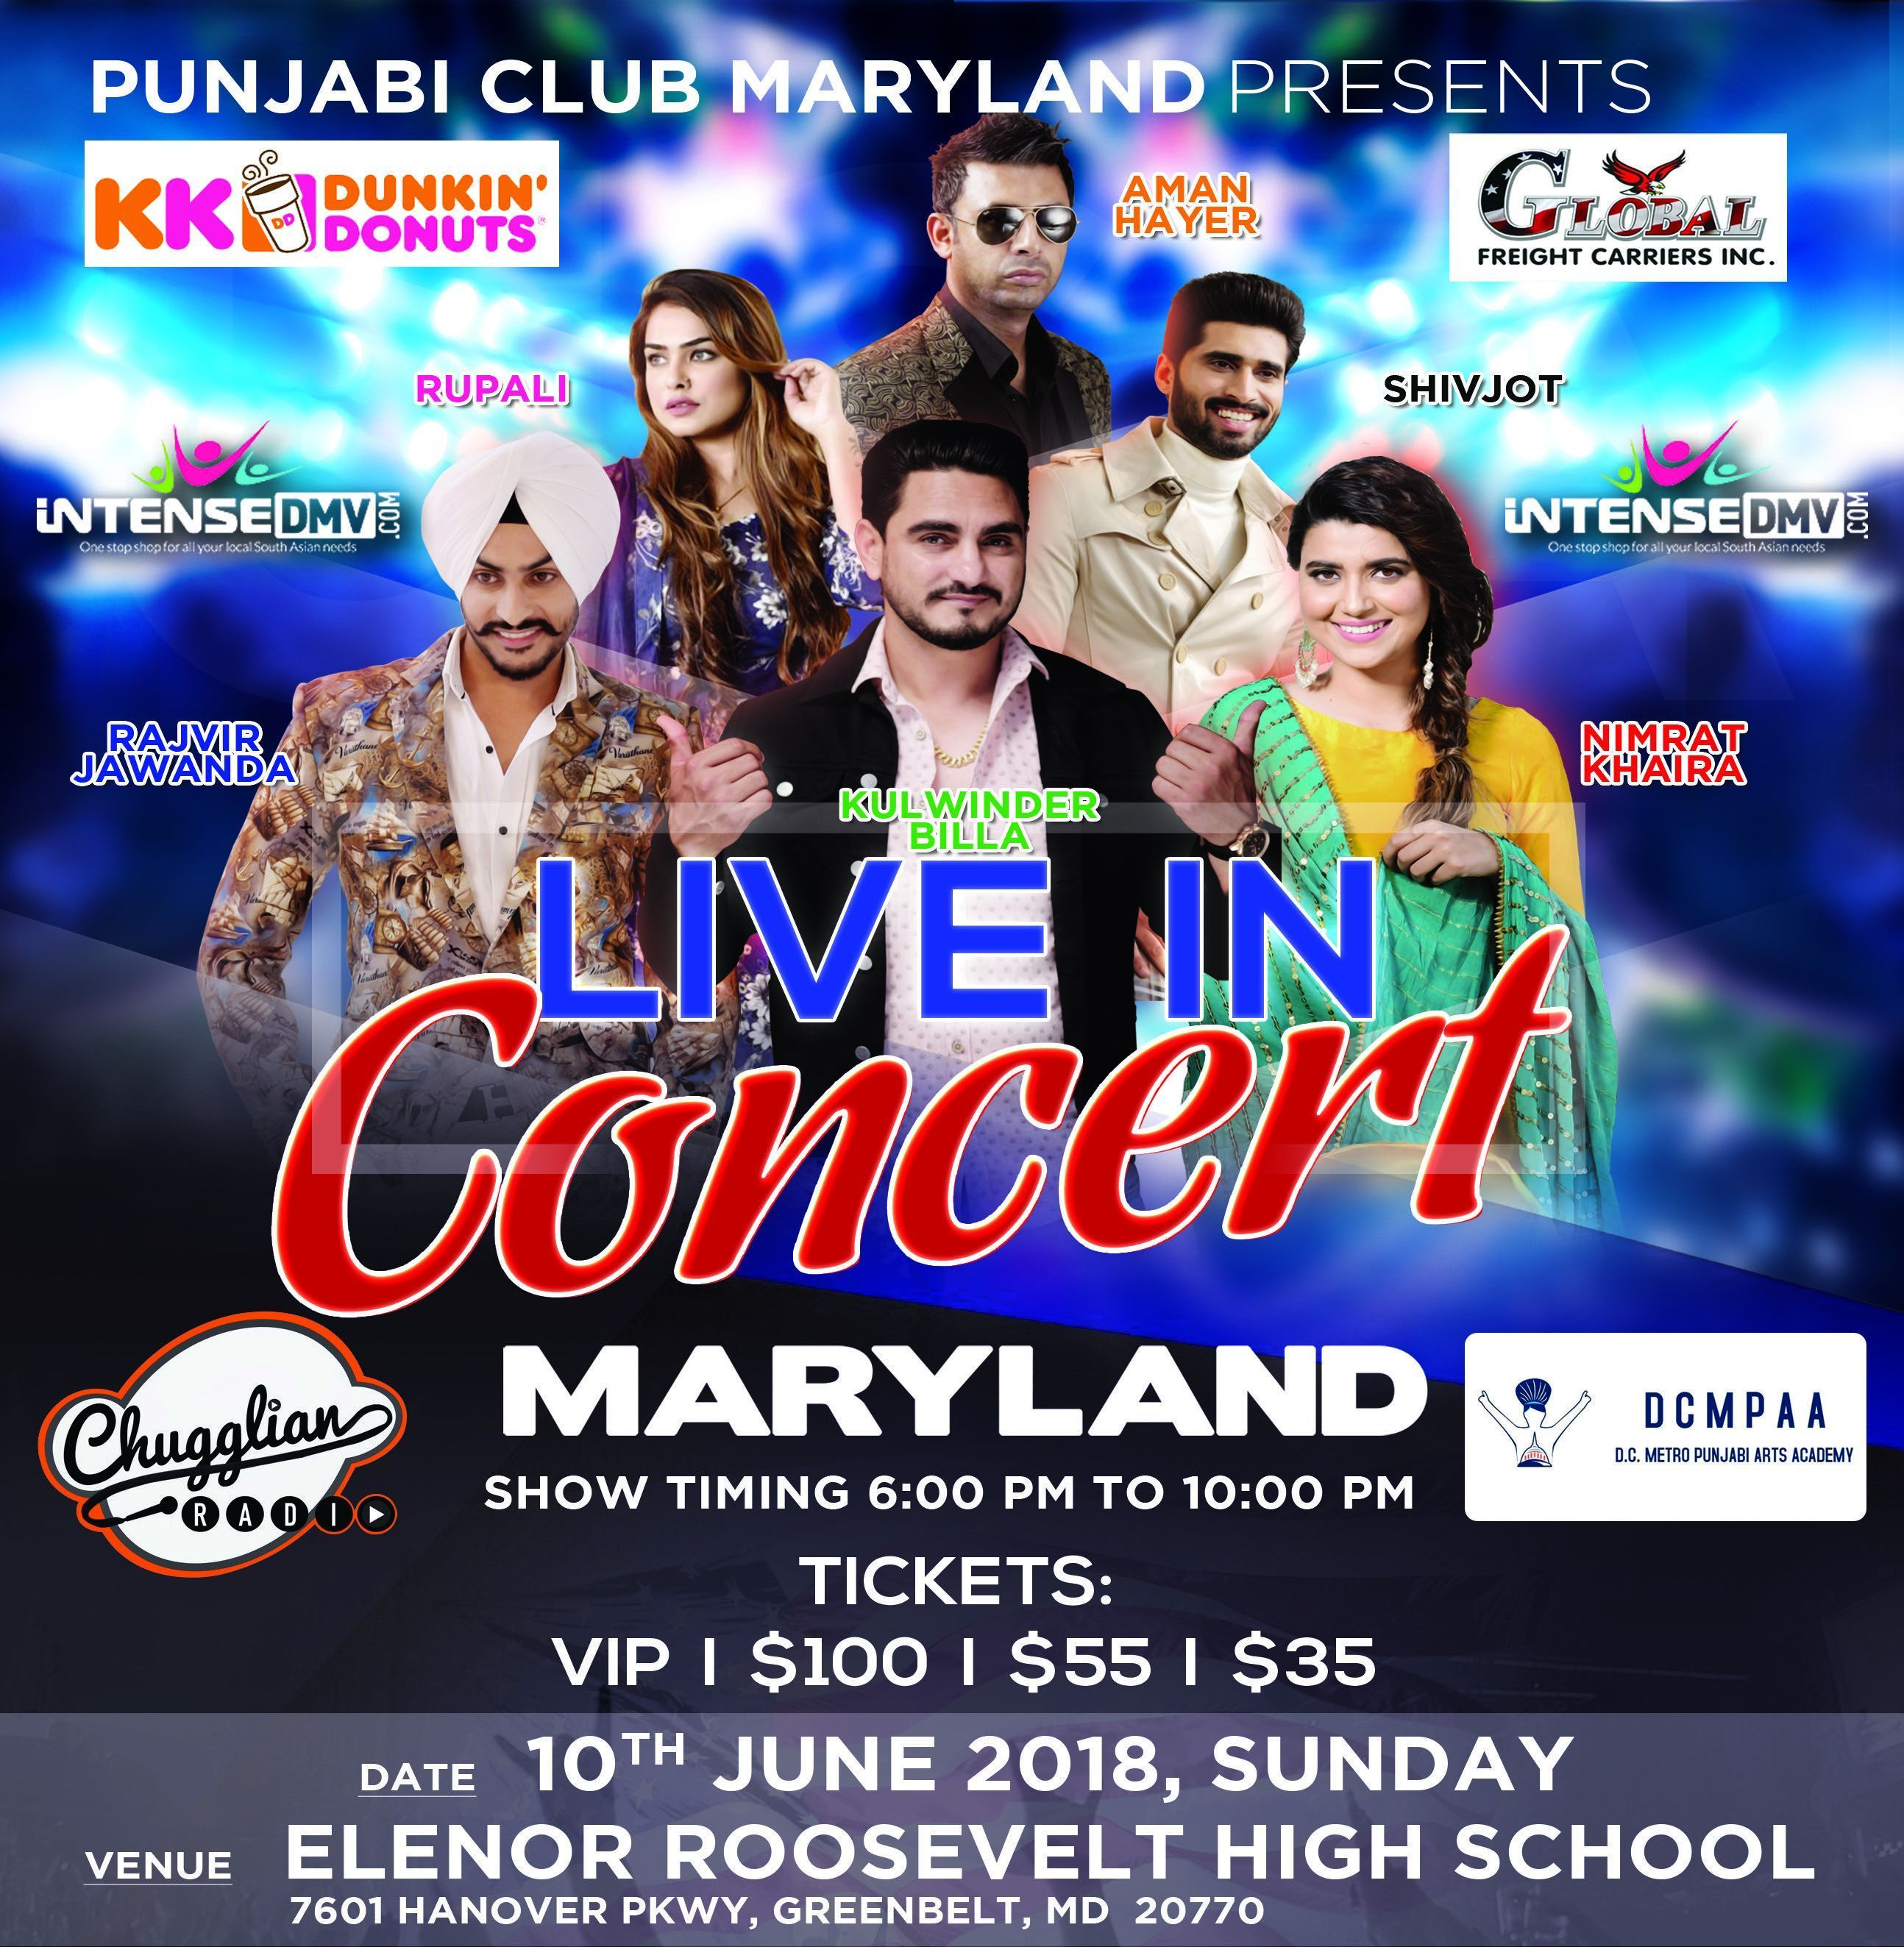 musical event, musical events near me, events nearby, events today, upcoming events in USA, desi events, Indian events, music concerts